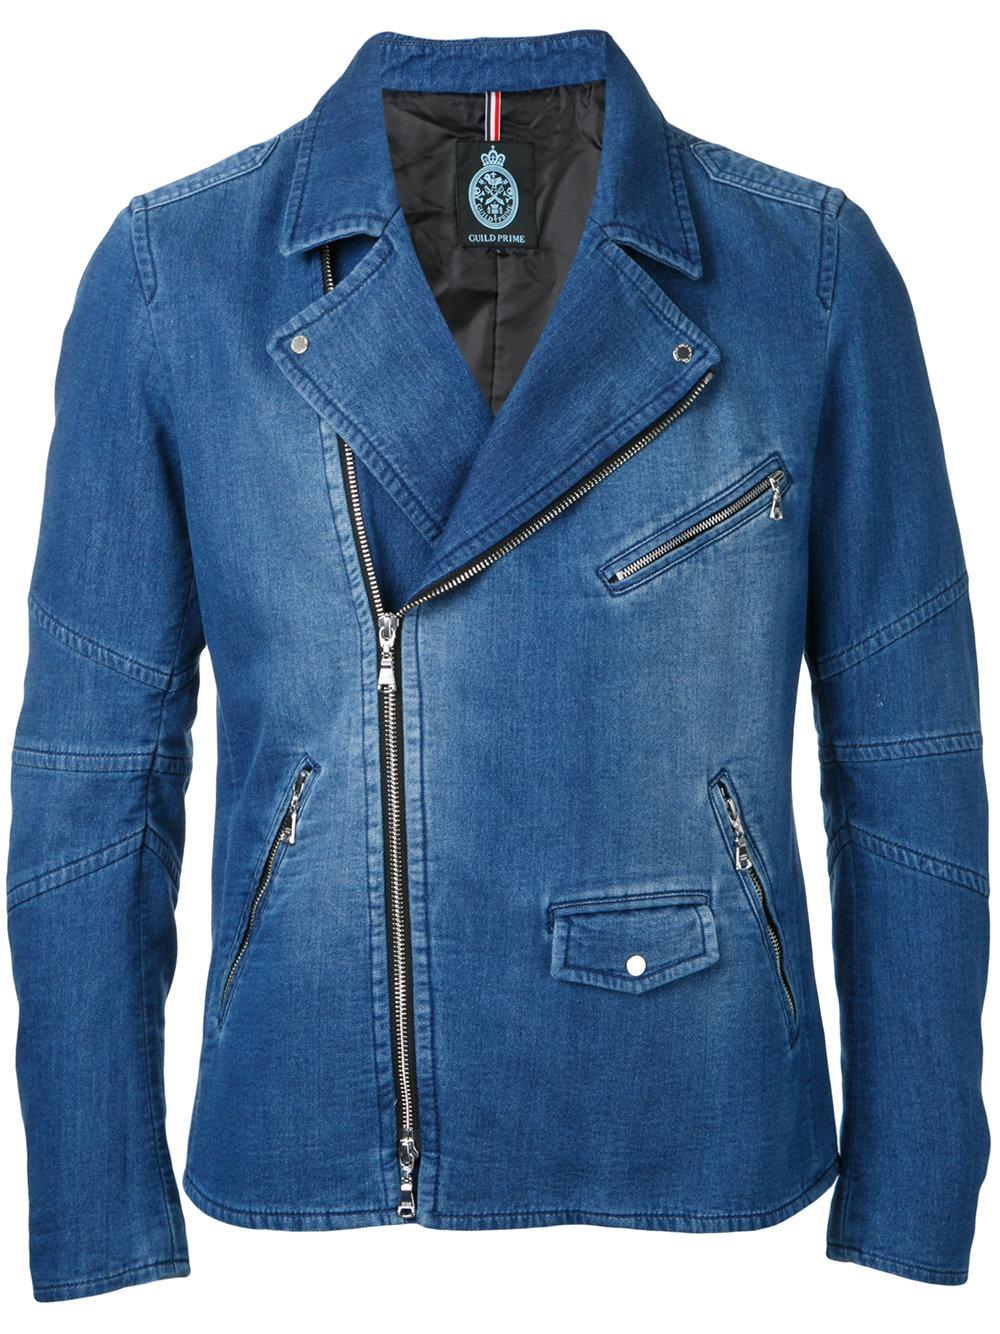 Guild Prime round neck denim jacket - Blue Cheap With Credit Card Low Price Sale Particular Order Cheap Price o7V1q7dV